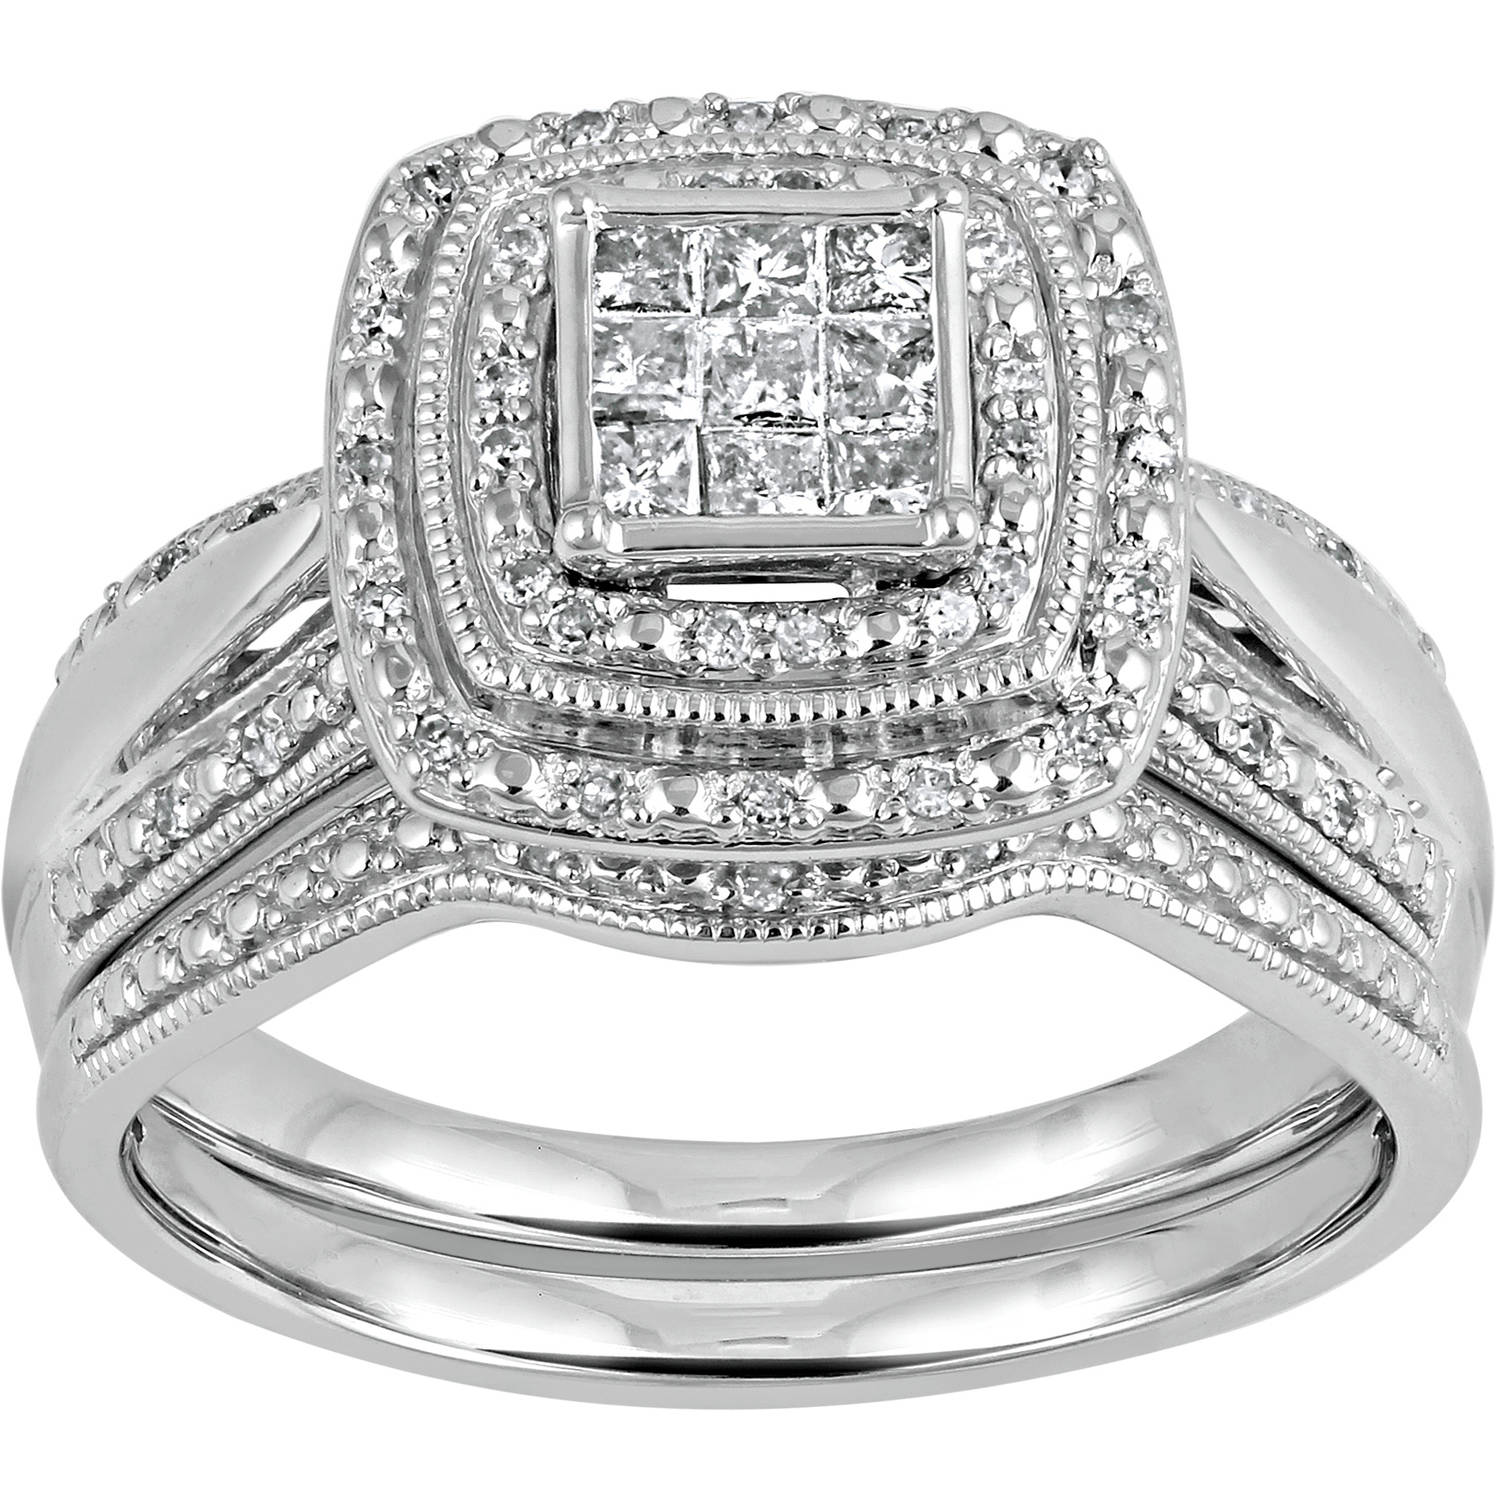 Forever Bride 13 Carat TW PrincessCut Double Halo Sterling